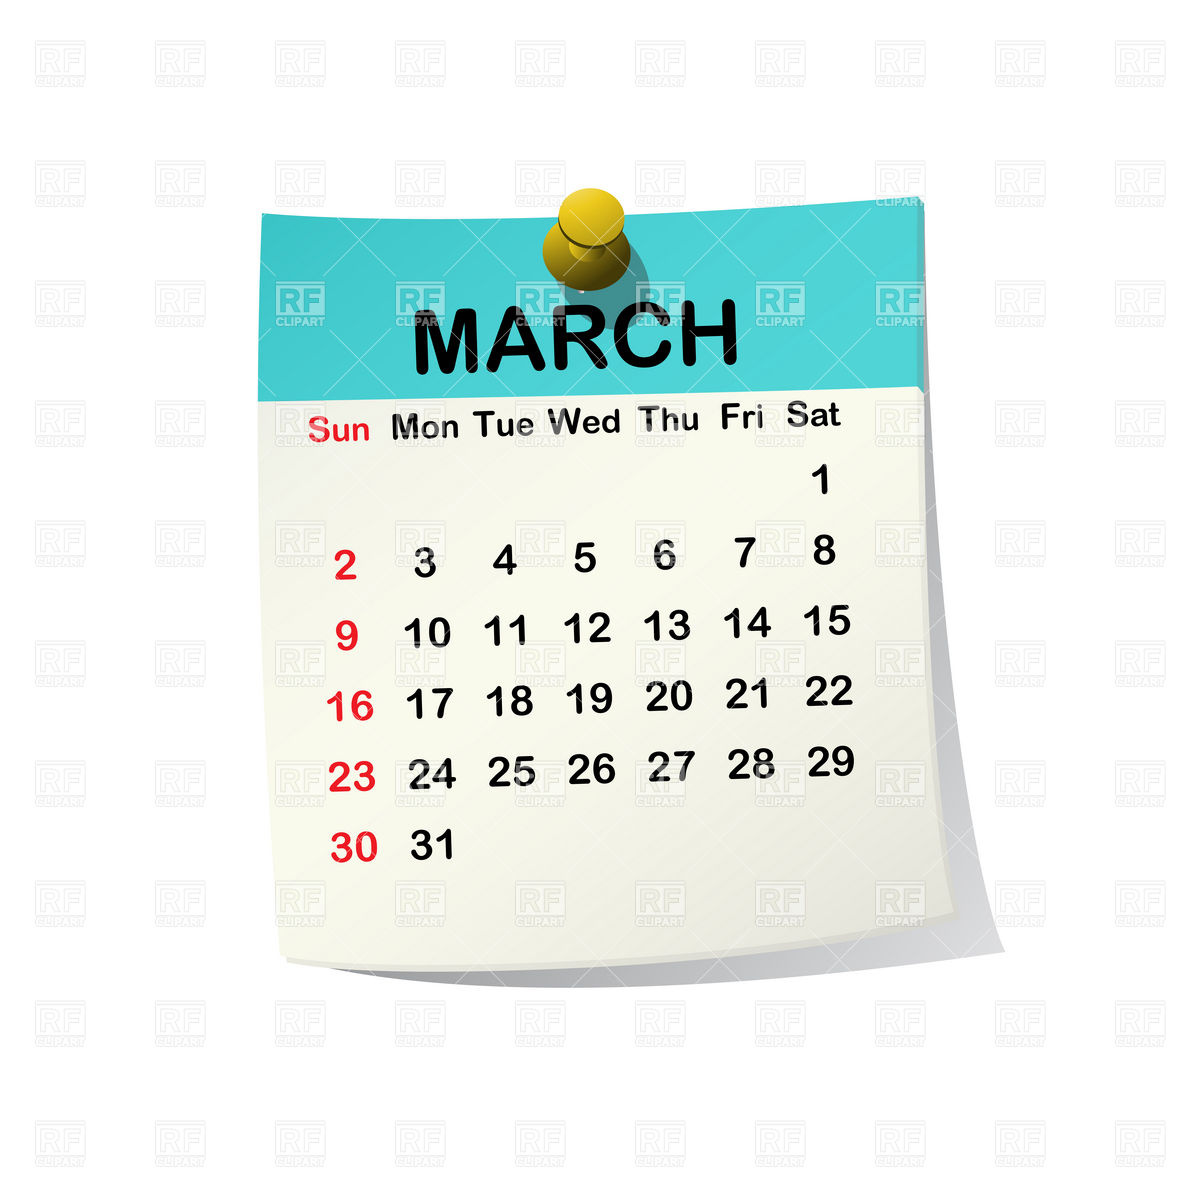 March Calendar Clipart - Clipart Kid clip art freeuse stock